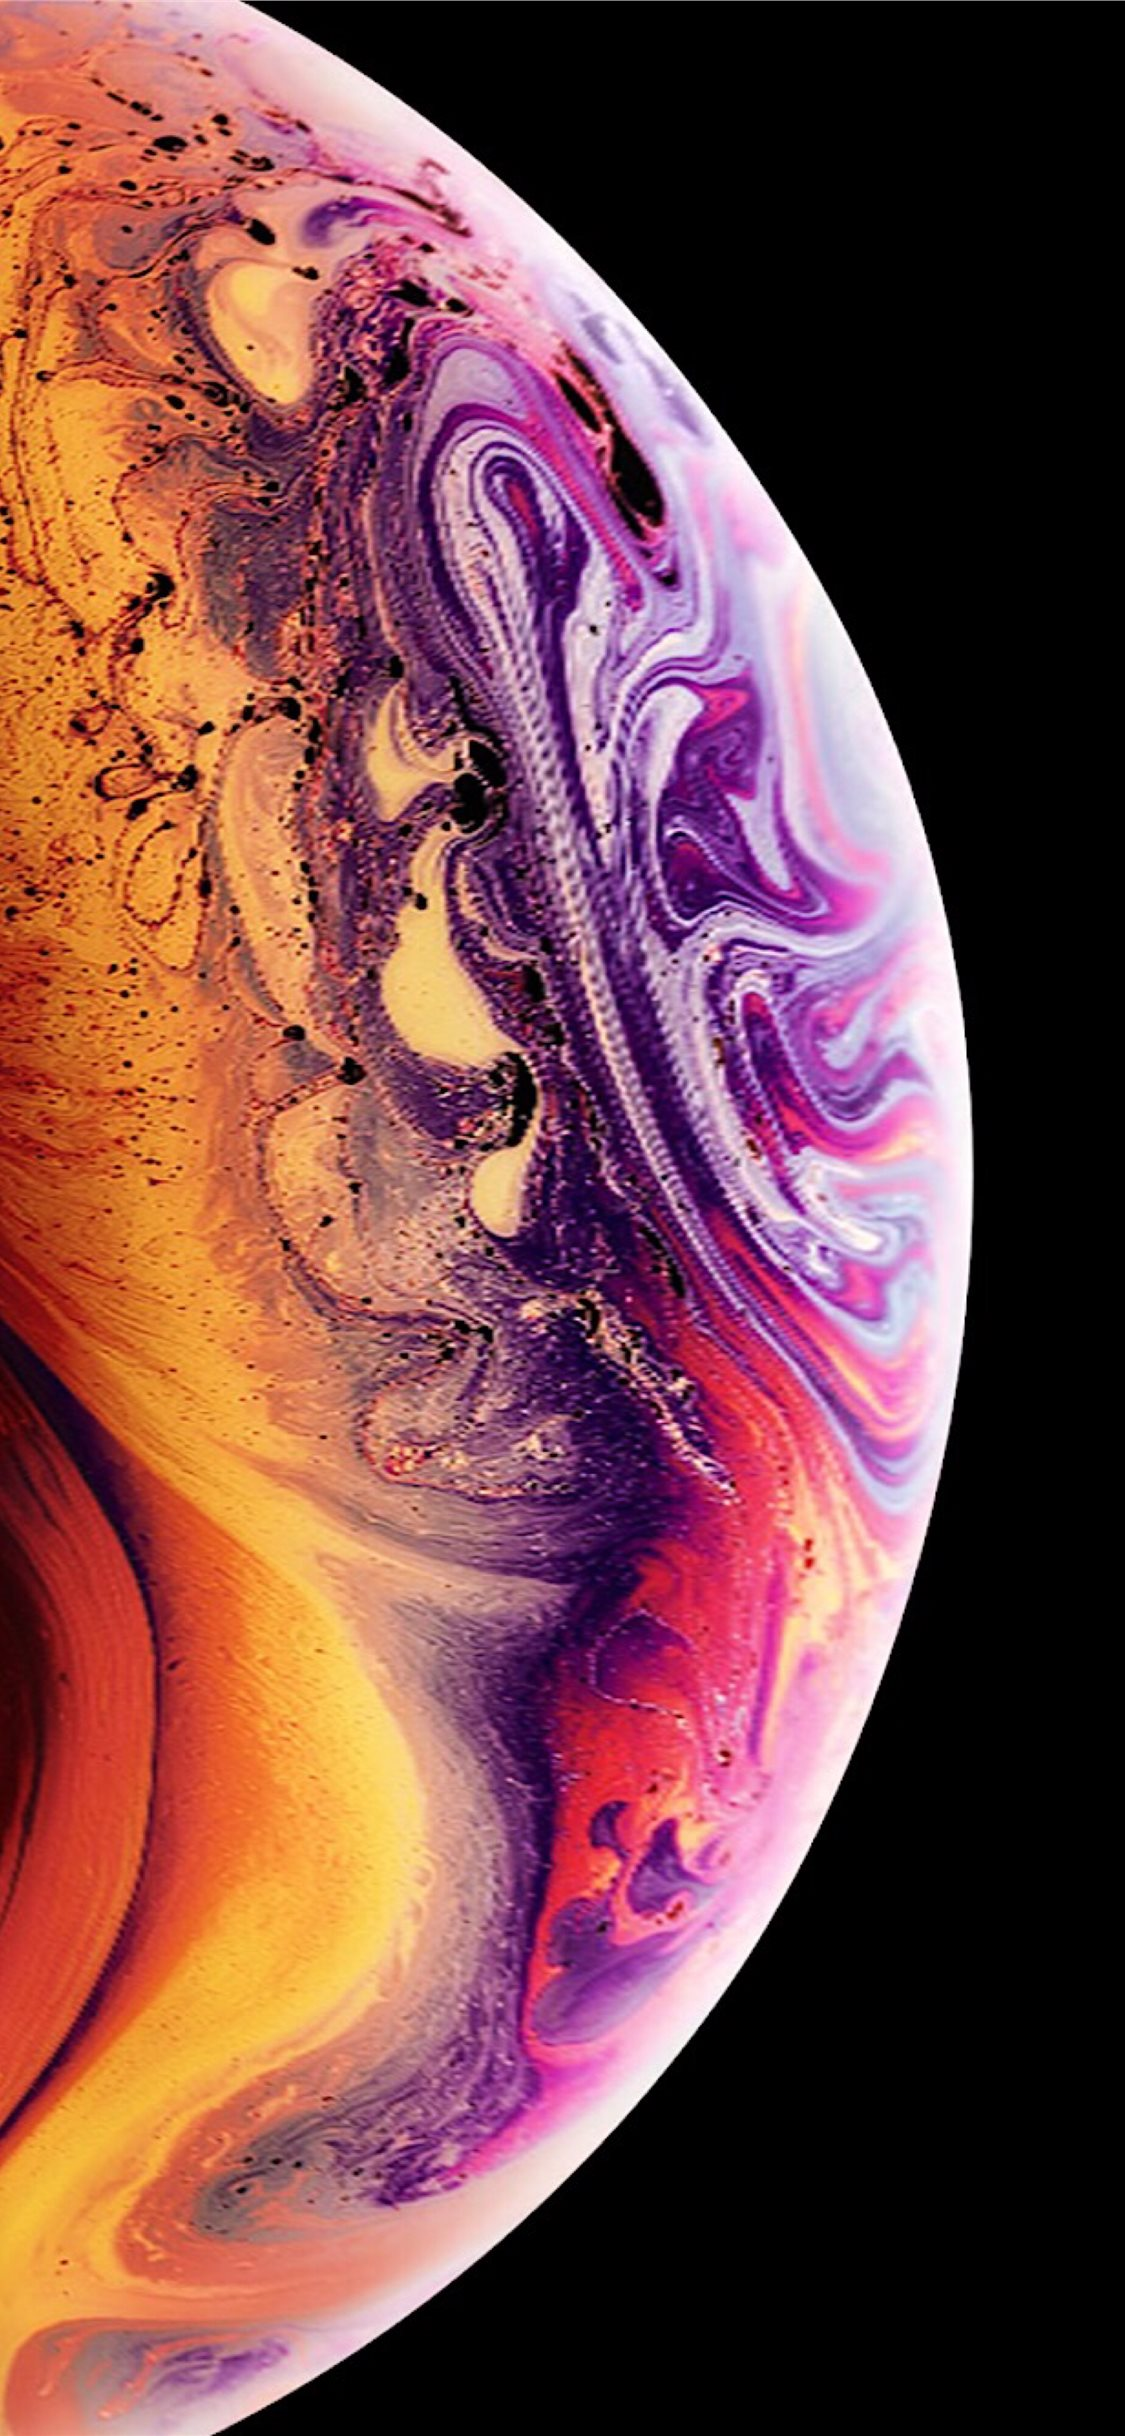 Iphone 11 And Iphone 11 Pro Wallpapers Ilikewallpaper